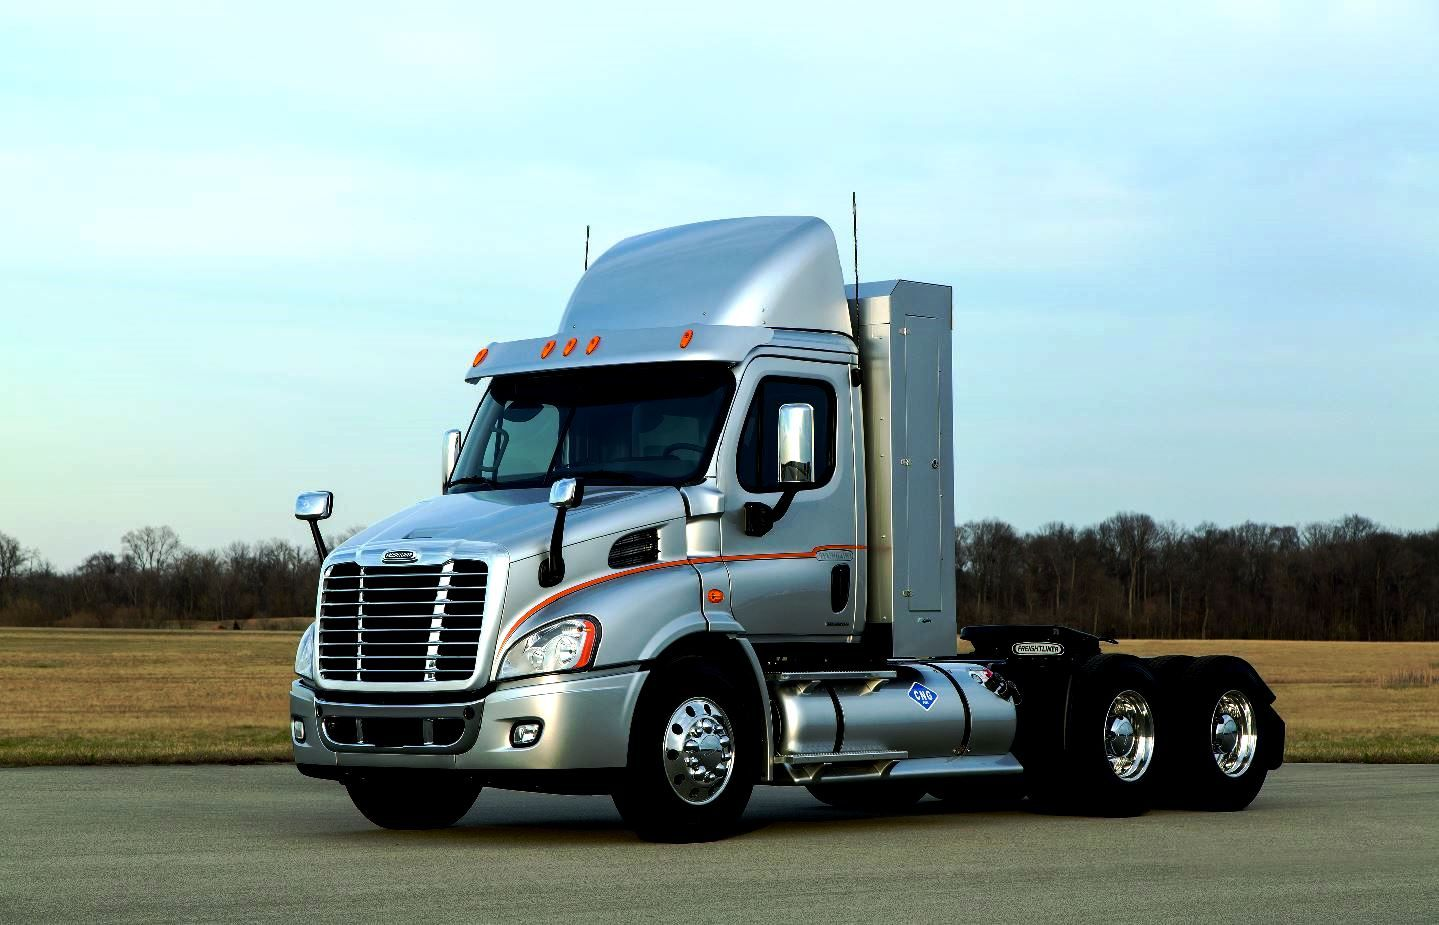 Roof Fairings For Semi Trucks : A beautiful silver freightliner cng cascadia day cab with